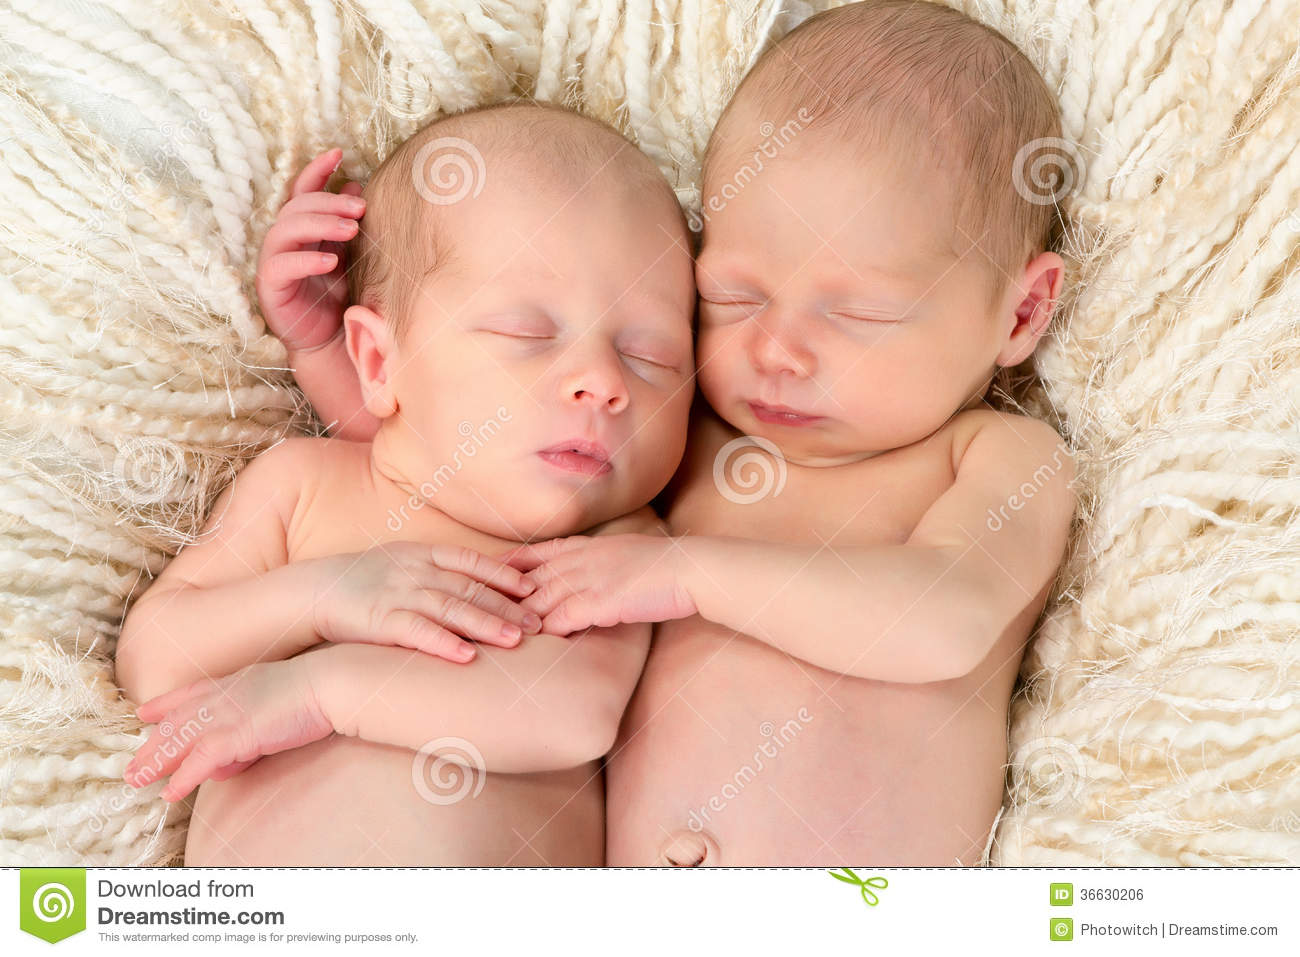 3d Wallpaper Girl And Boy Twin Babies Together Royalty Free Stock Image Image